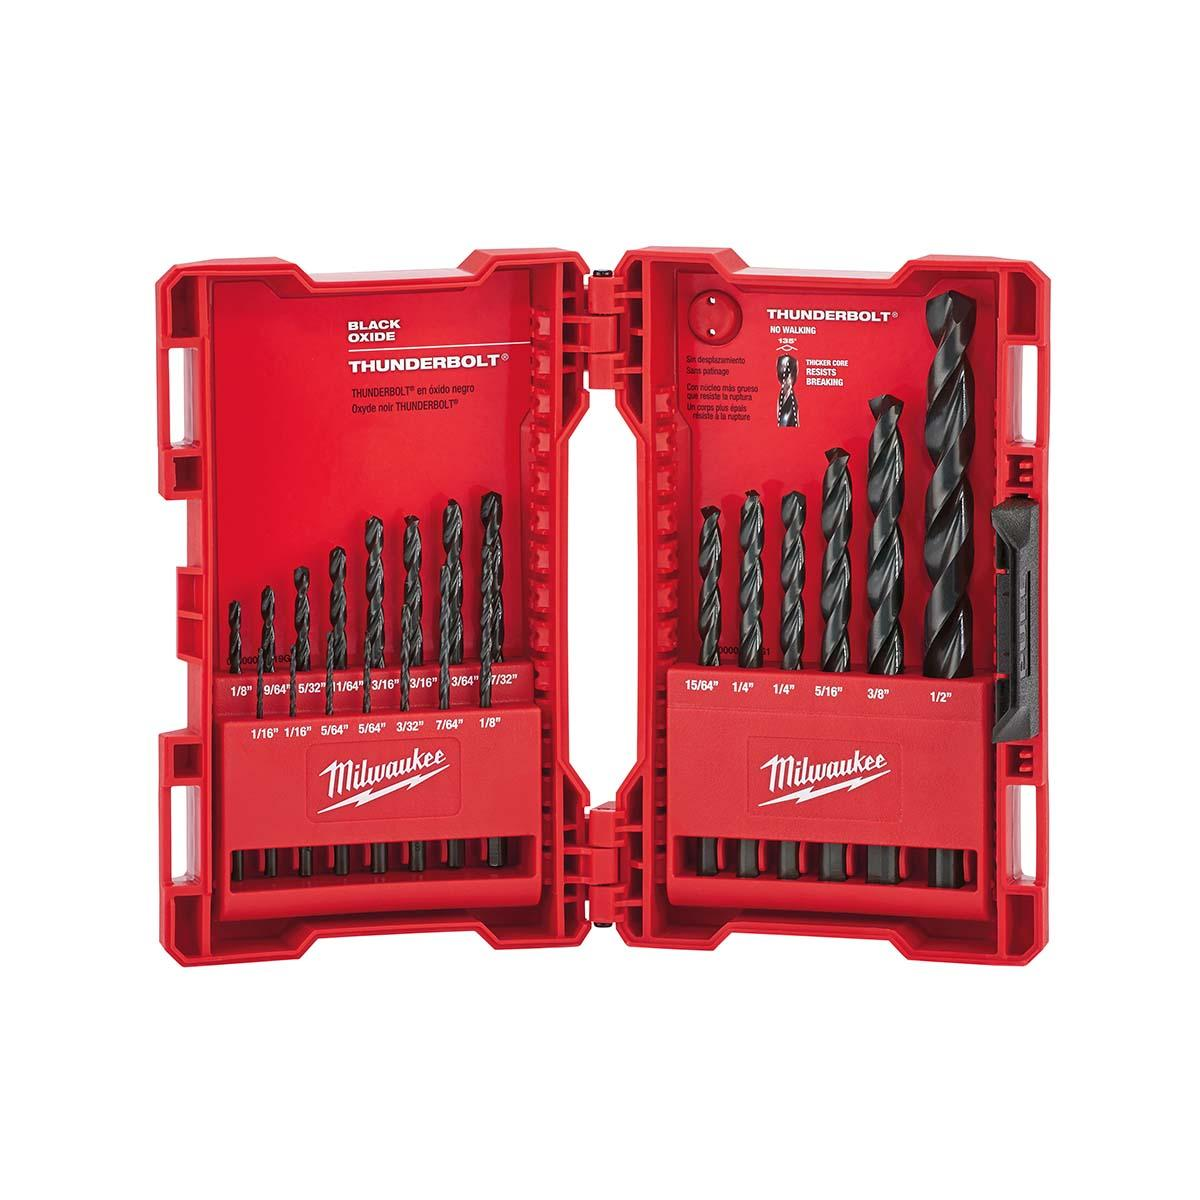 Thunderbolt® Black Oxide Drill Bit Set (21 PC)